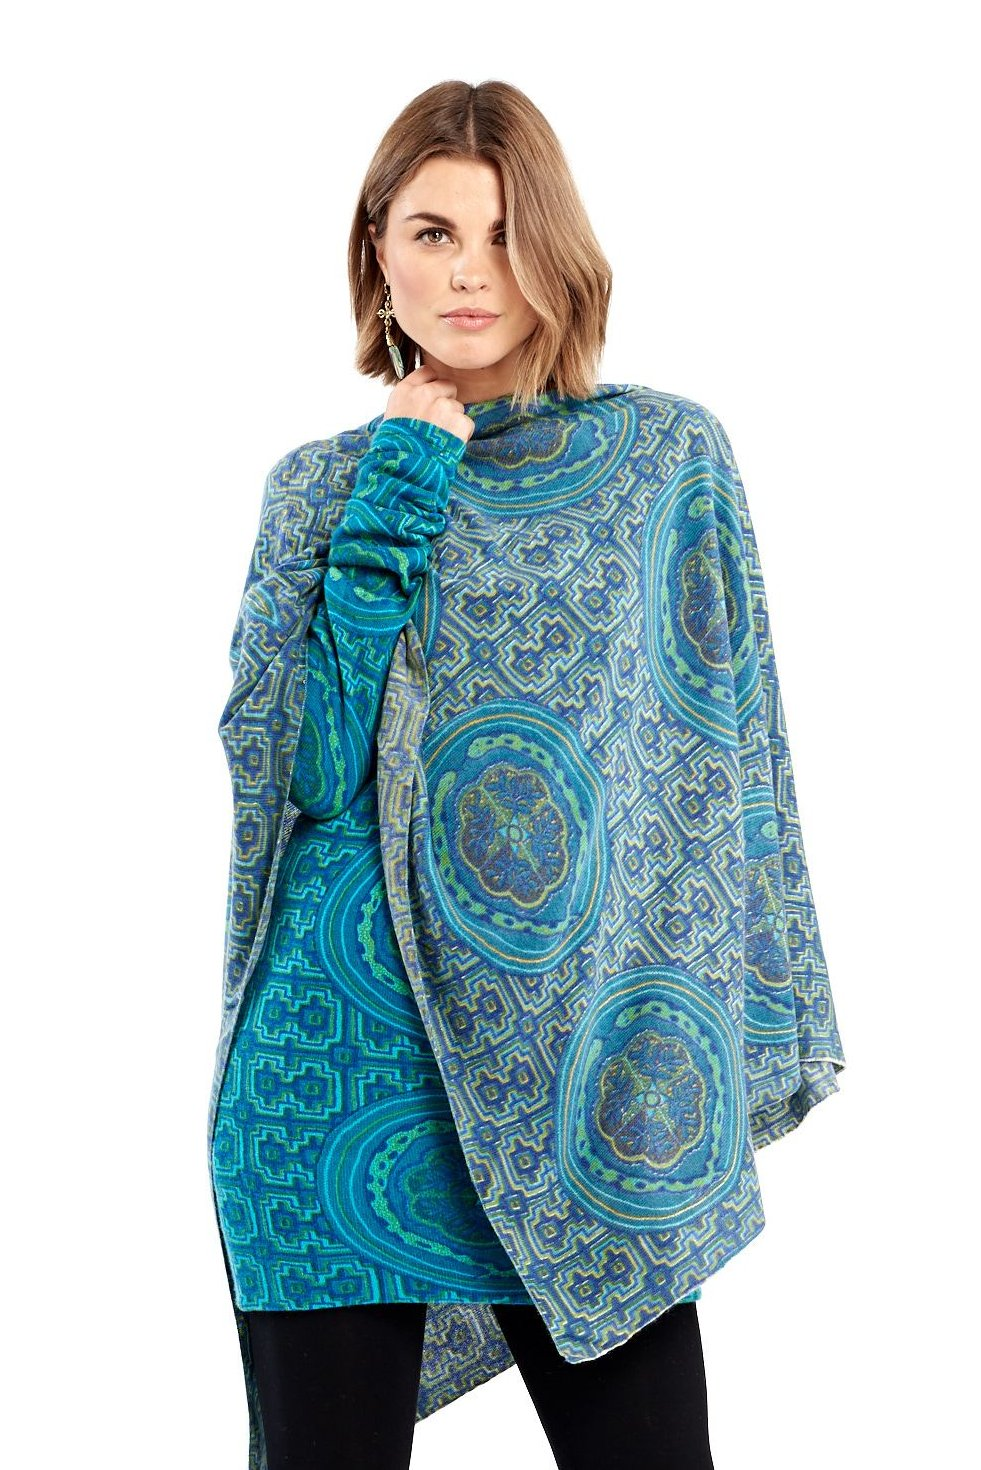 100% Pure Mongolian Cashmere Luxury Hand Printed Shipibo Poncho Blue/Turquoise - MUDRA